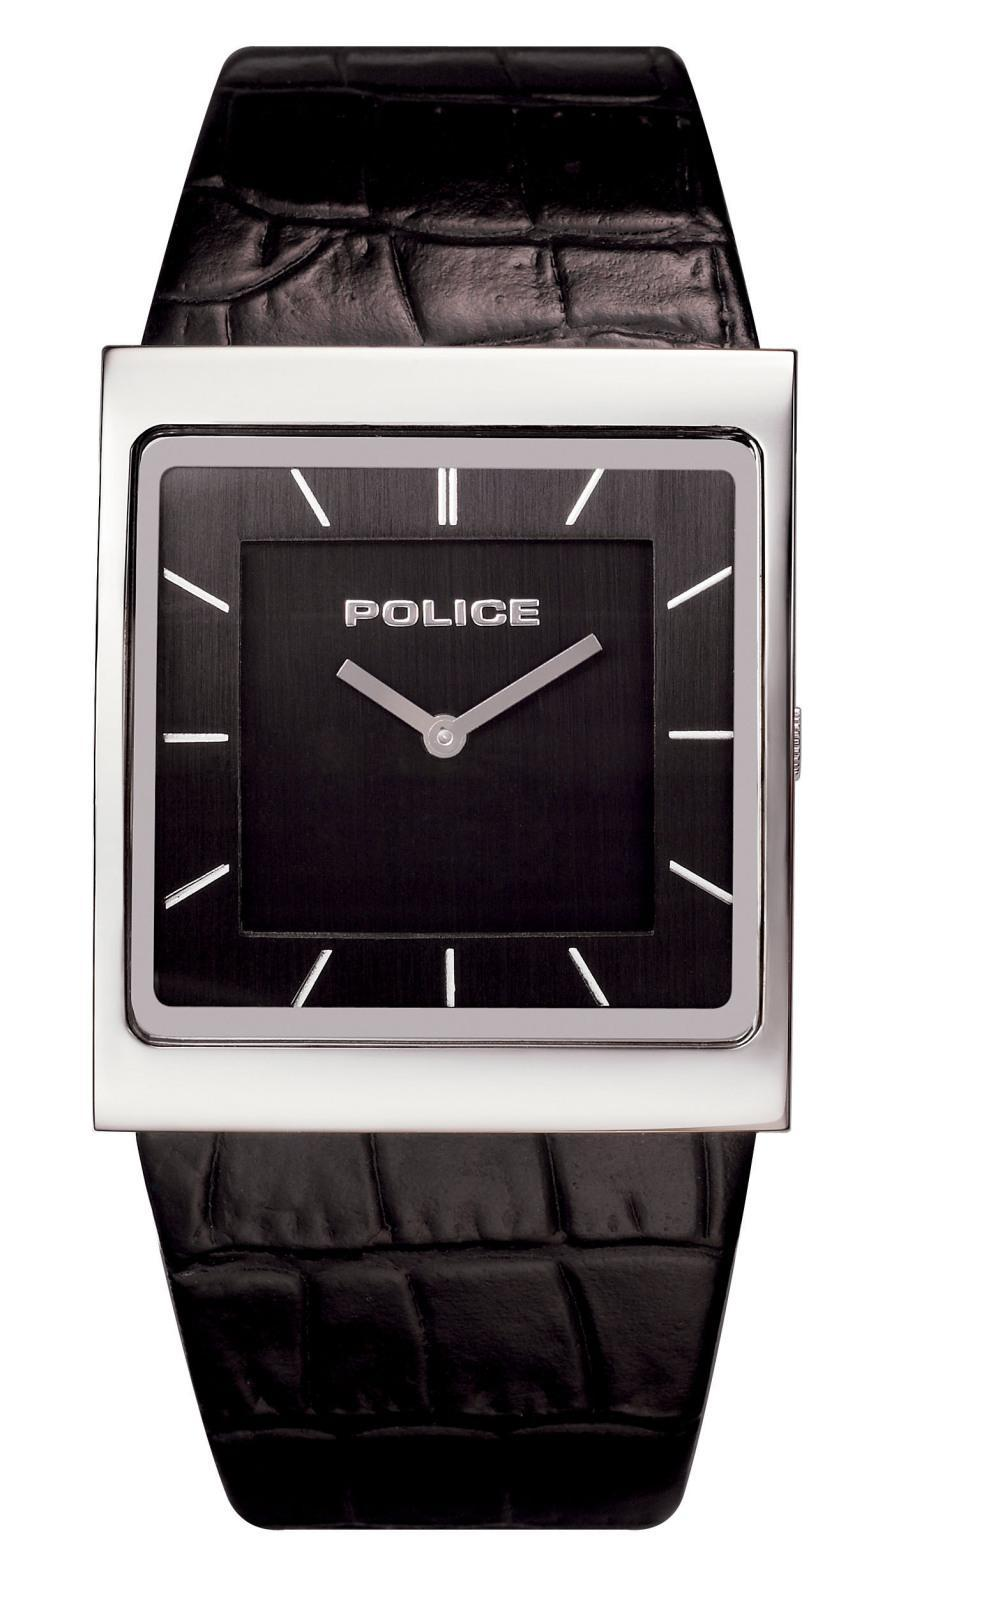 Police Men's Slim Square-shape Black Watch - Free Shipping ...